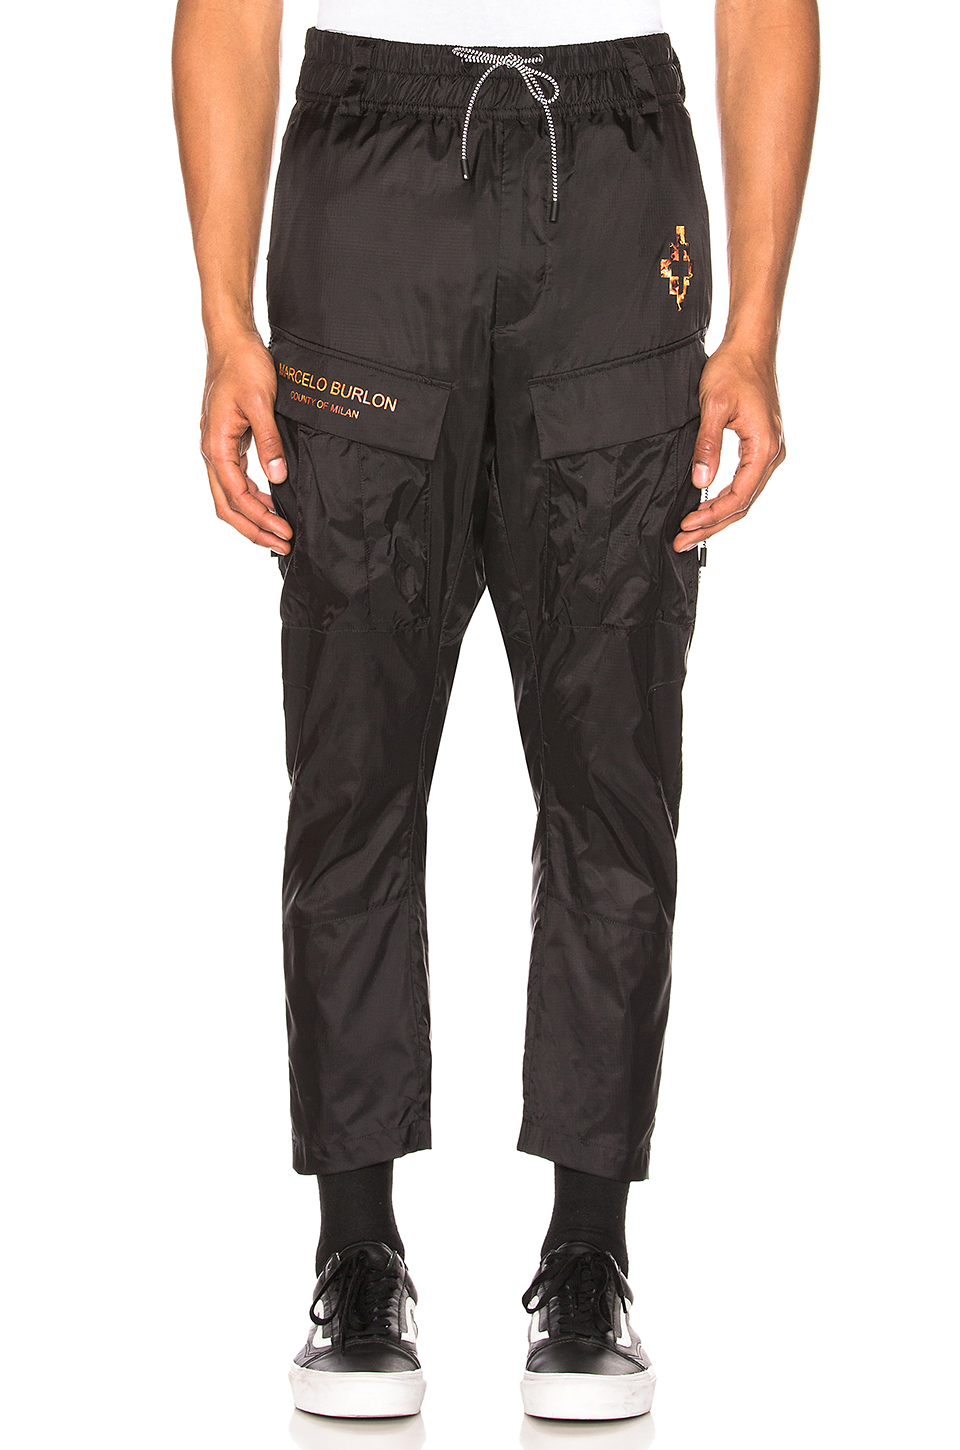 Marcelo Burlon Fire Cross Cargo Pants in Black